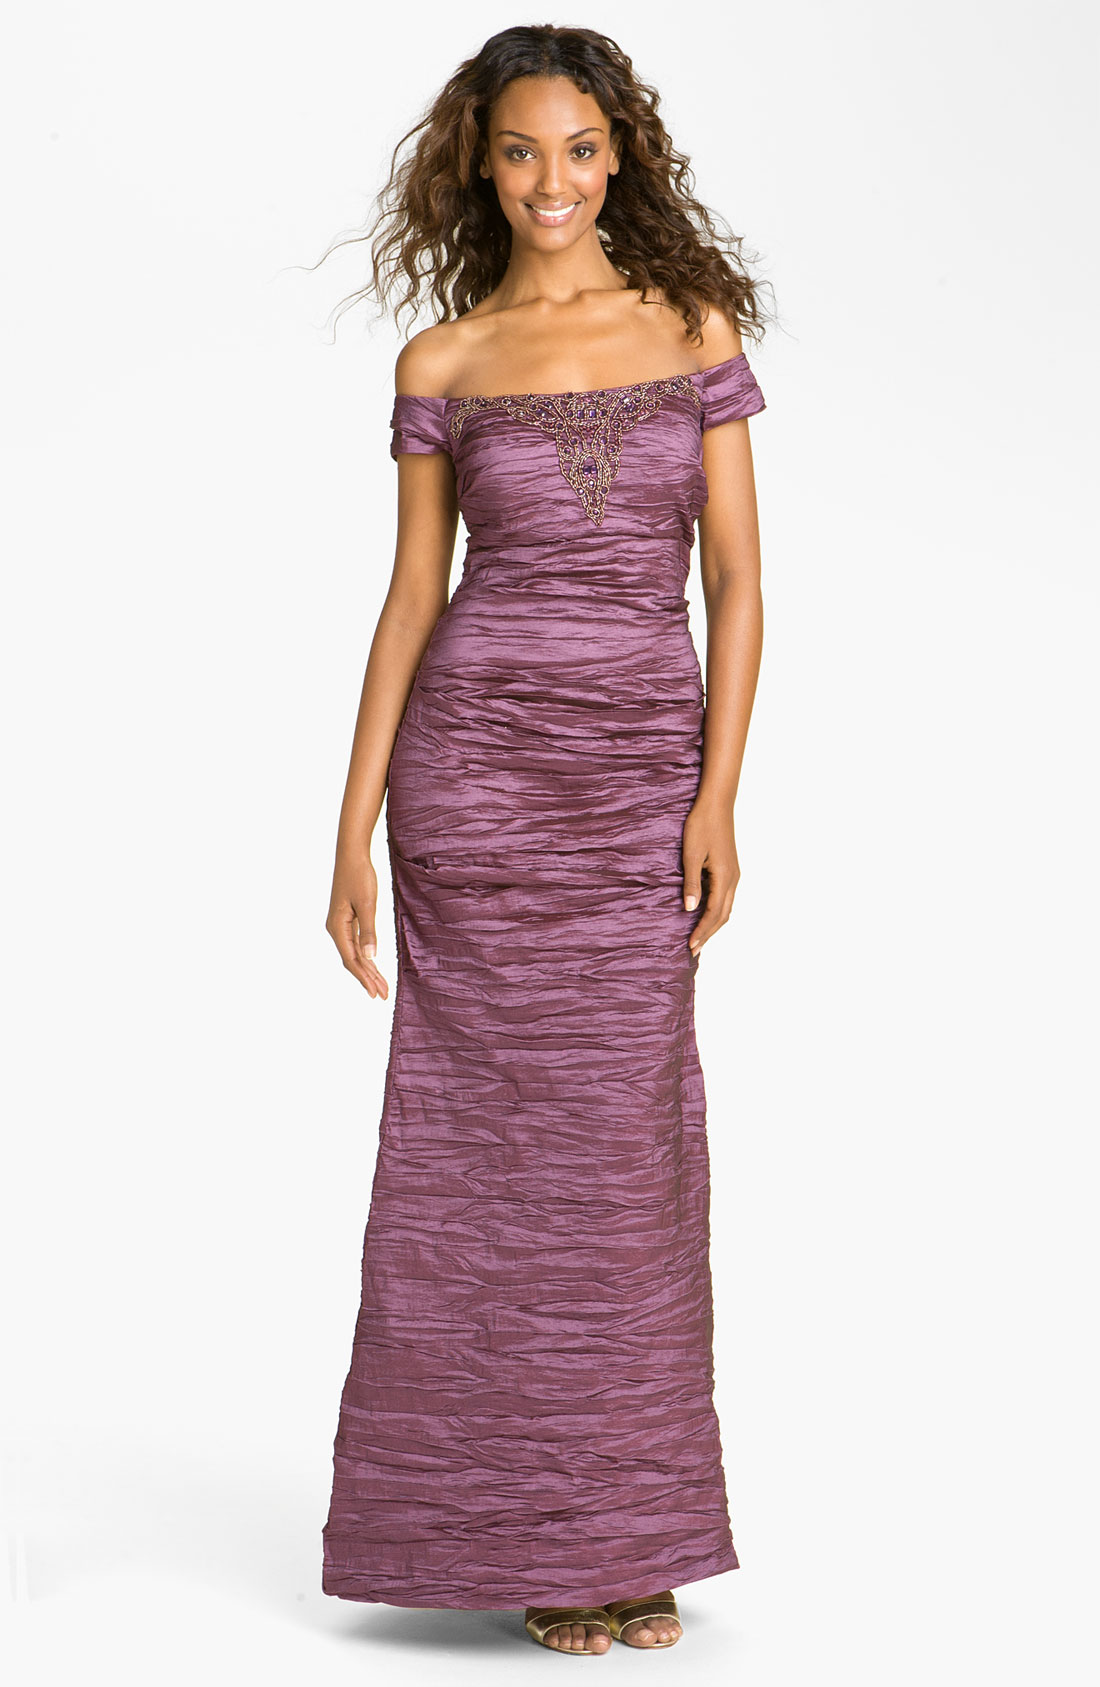 Fine Alex Evenings Gown Contemporary - Images for wedding gown ideas ...